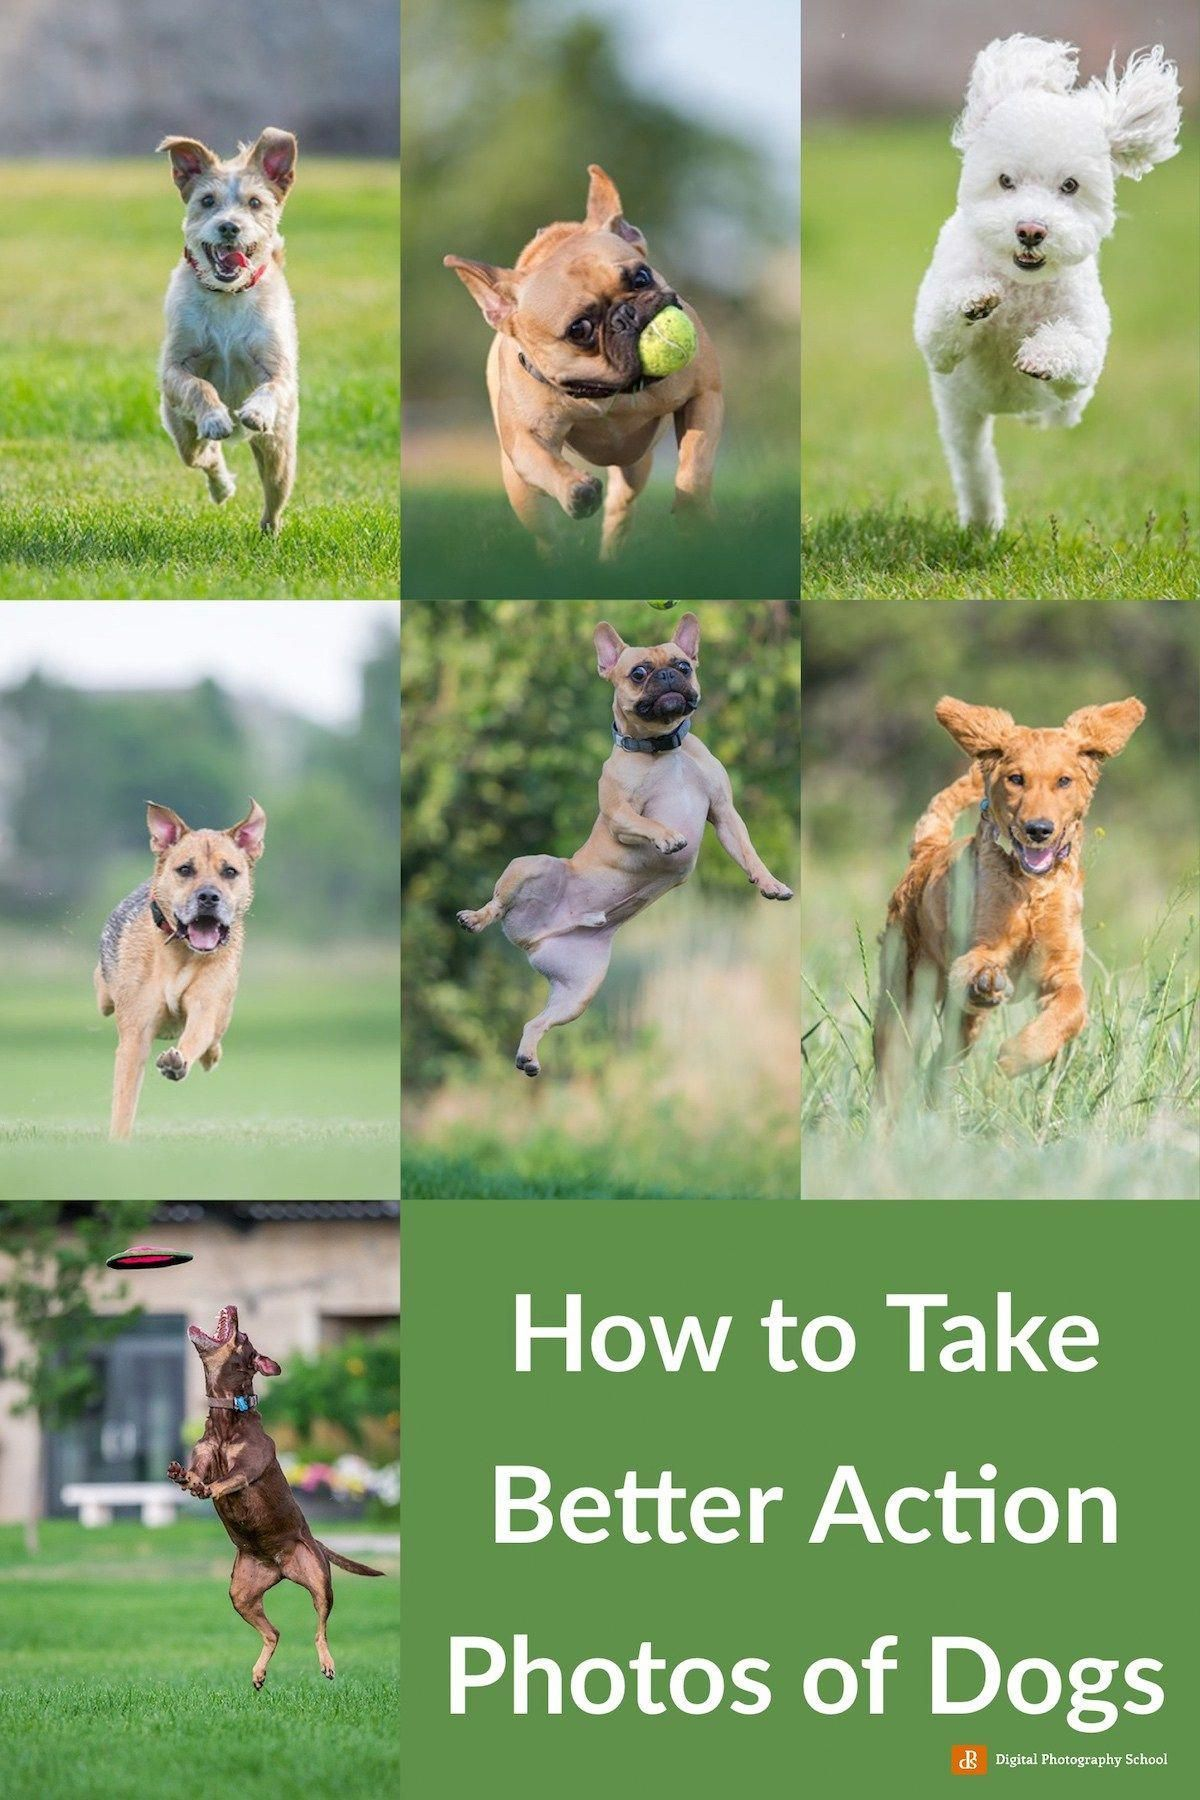 How to Take Better Action Photos of Dogs -  Unwieldy Dslr Photography Tips Photographers #dslrofficial #PhotographyGearPhotoTips  - #